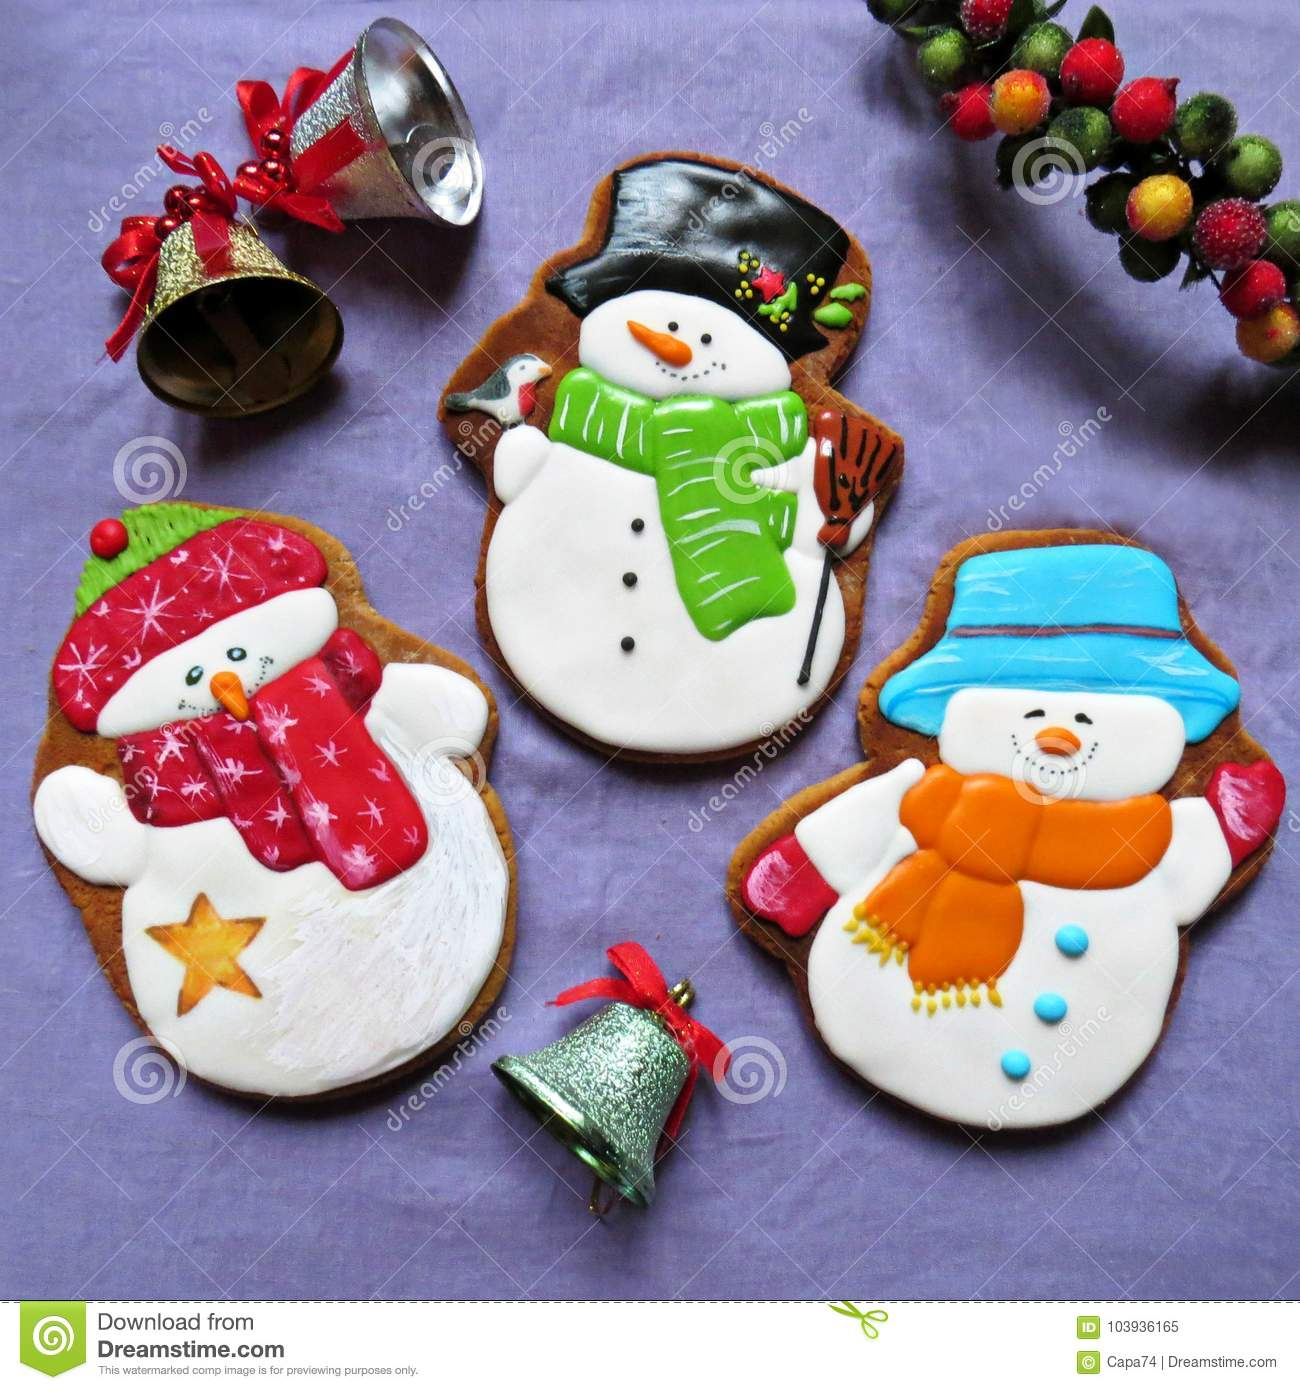 Christmas Cookies Gingerbread For New Year Snowman Stock Image